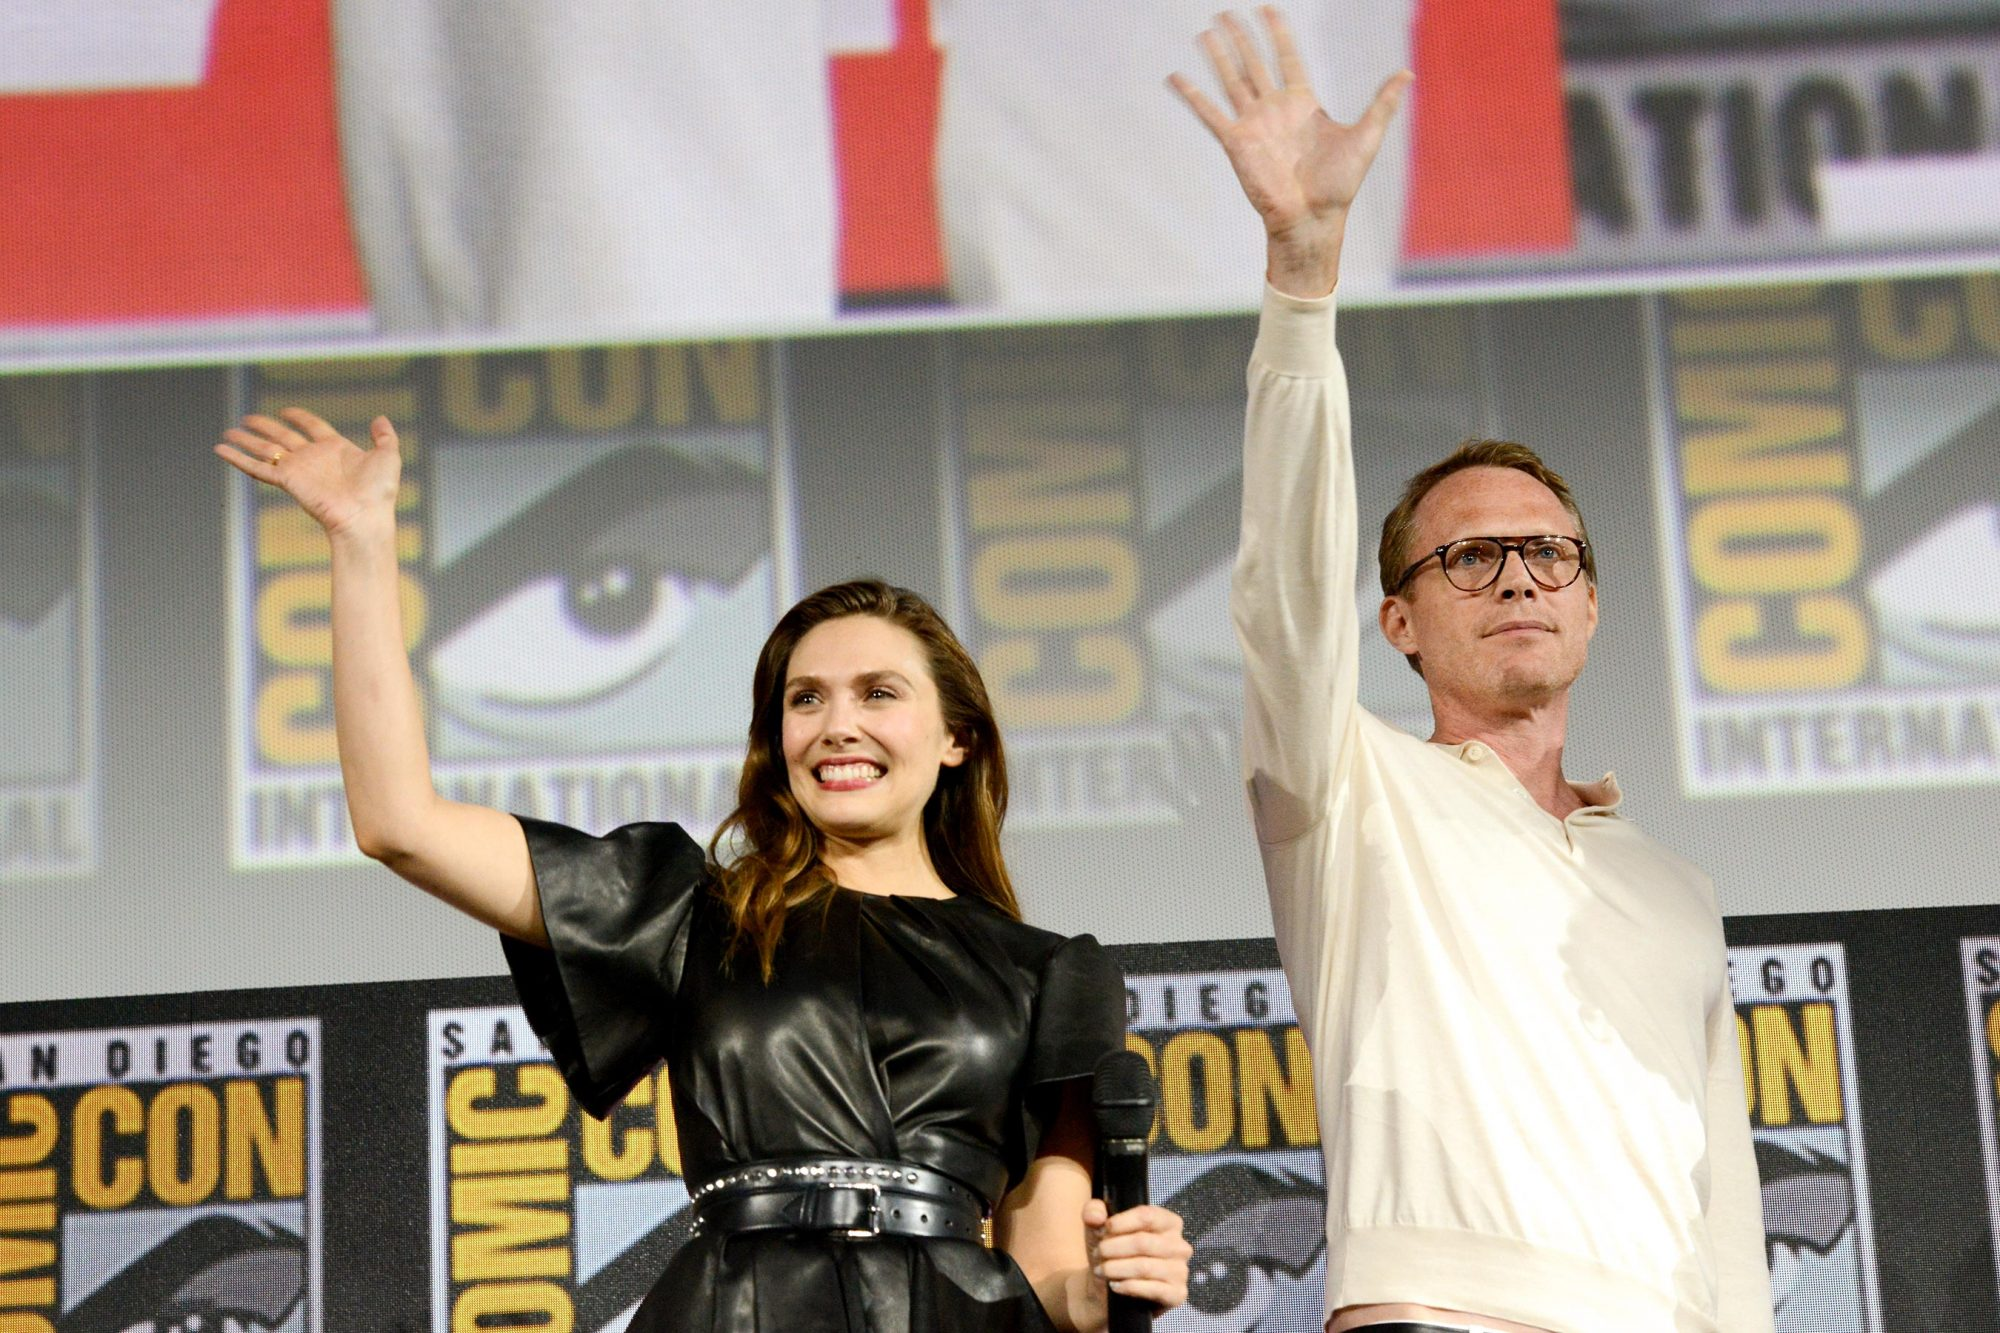 SAN DIEGO, CALIFORNIA - JULY 20: Elizabeth Olsen and Paul Bettany speak at the Marvel Studios Panel during 2019 Comic-Con International at San Diego Convention Center on July 20, 2019 in San Diego, California. (Photo by Albert L. Ortega/Getty Images)